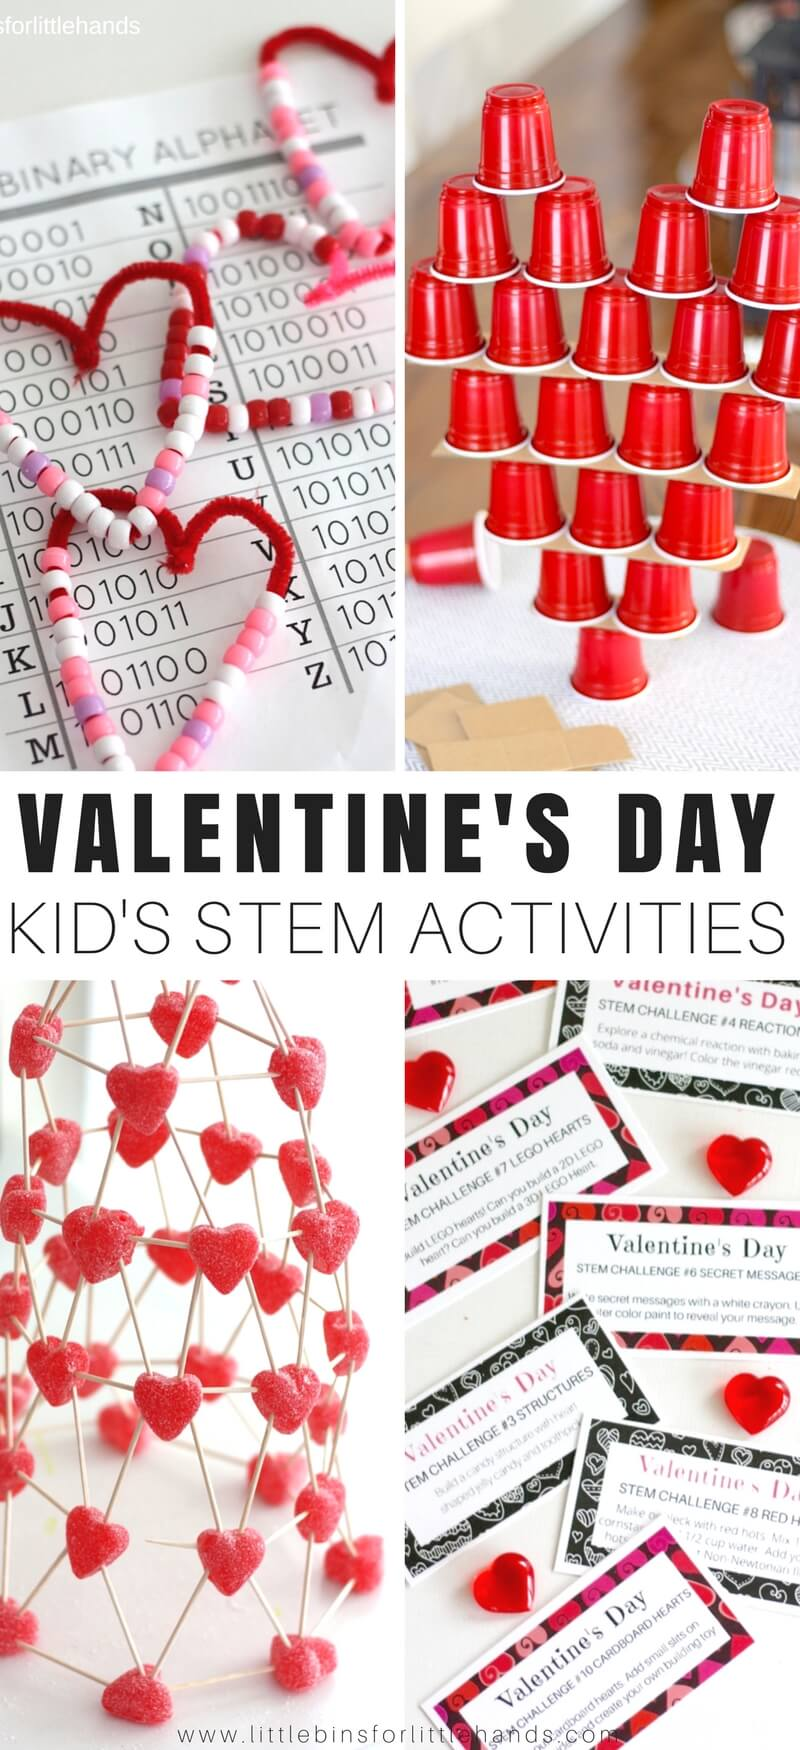 Toll 14 DAYS OF VALENTINES DAY STEM ACTIVITIES COUNTDOWN